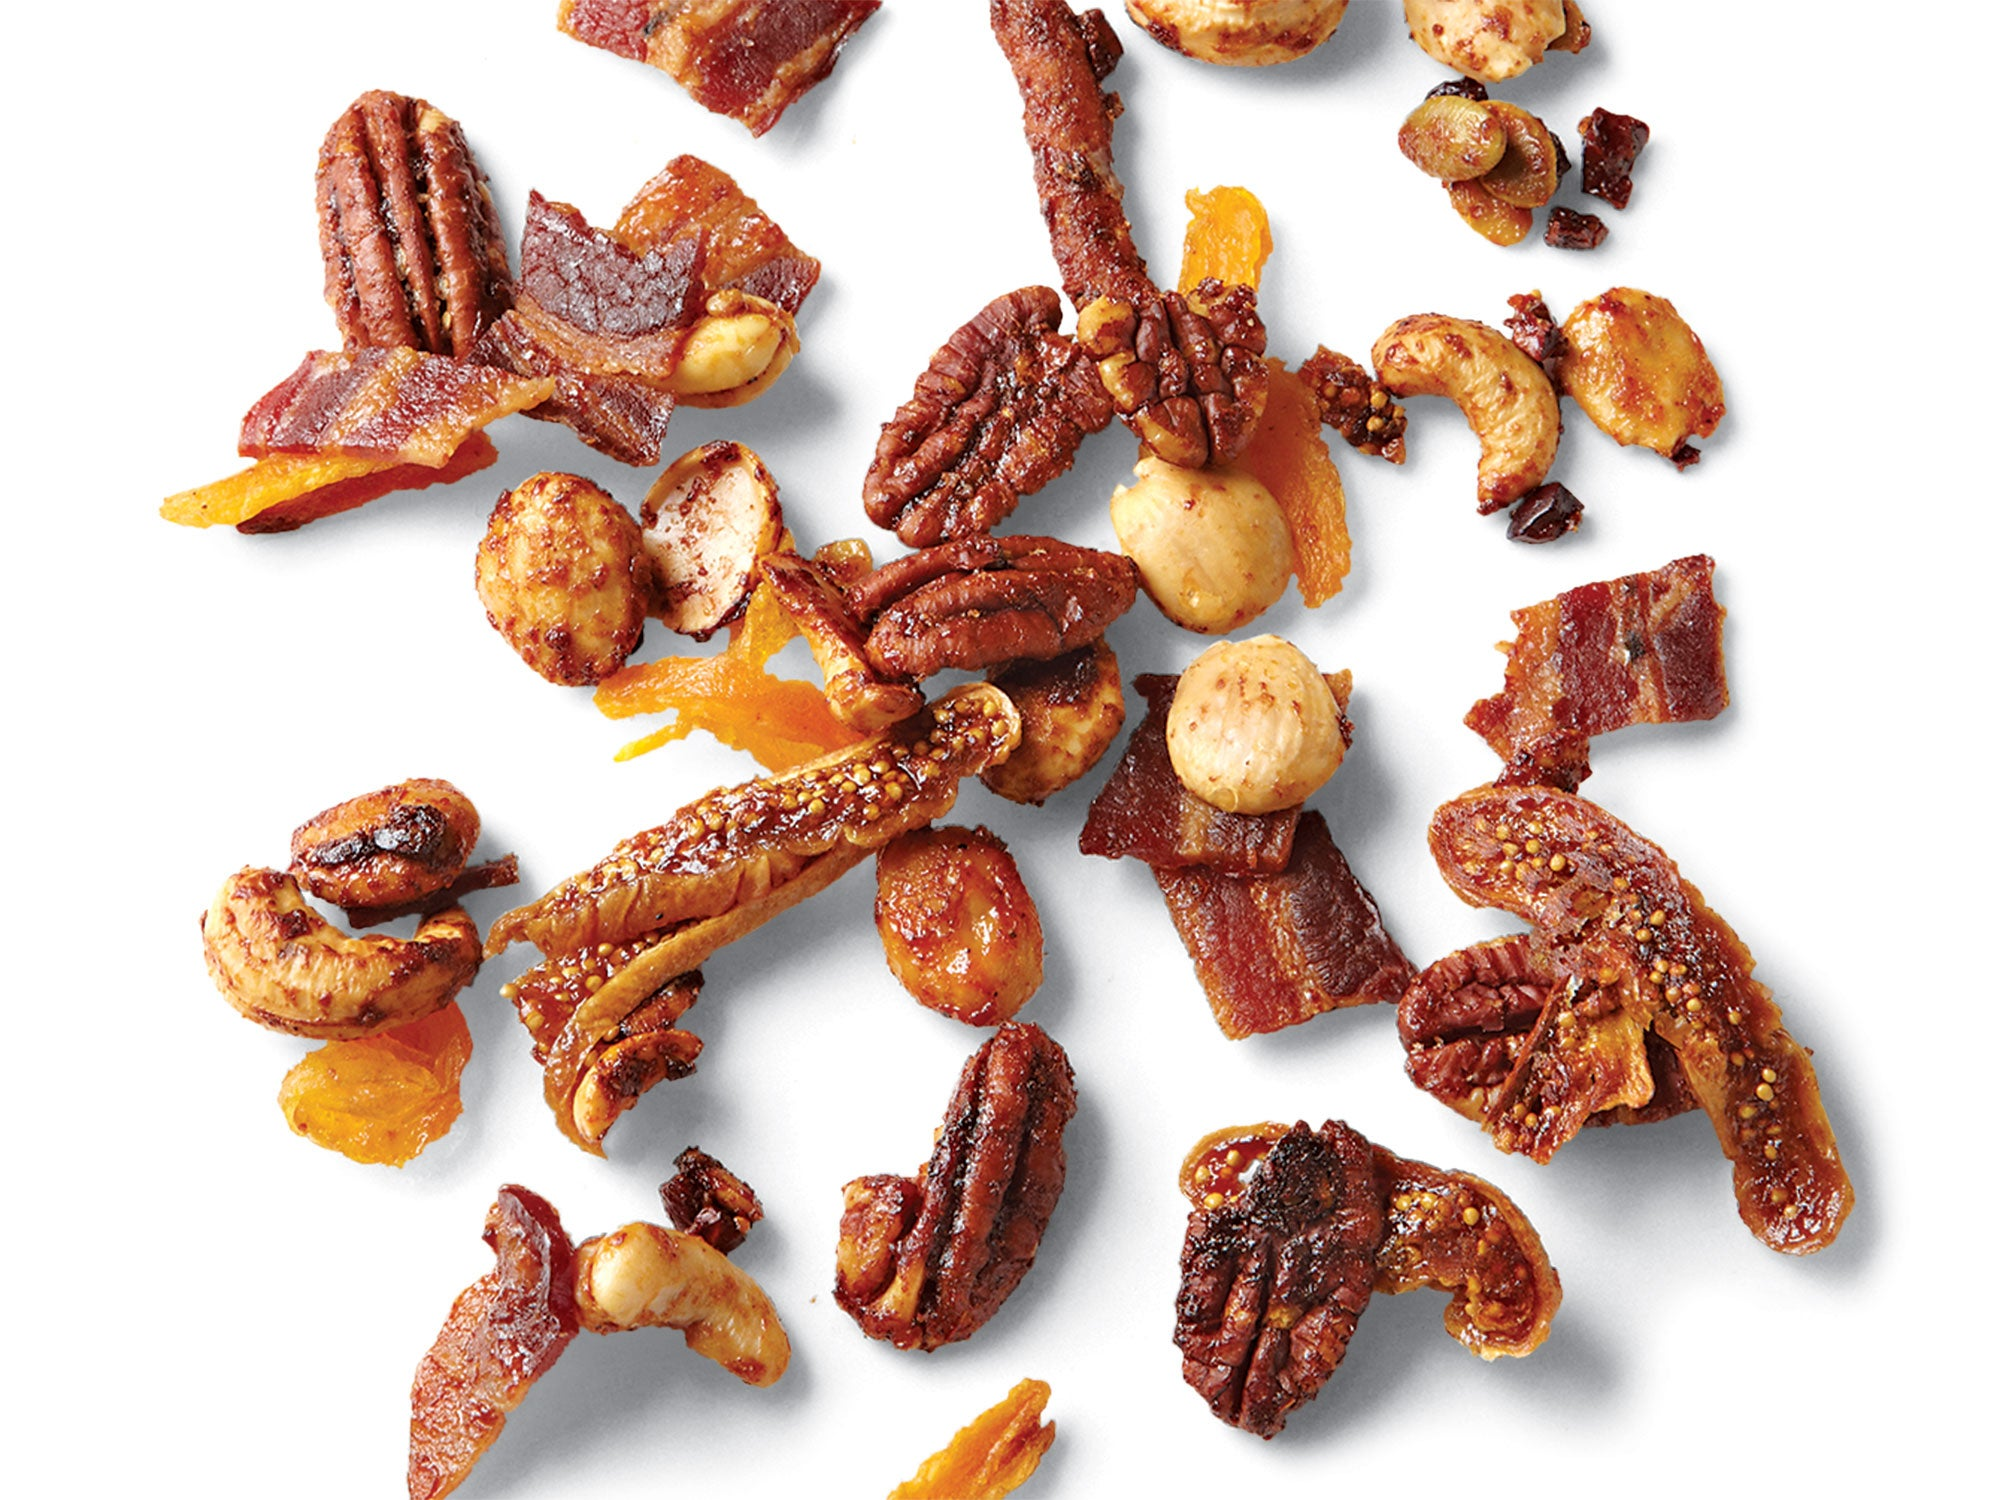 Road Trip Barbecue Trail Mix